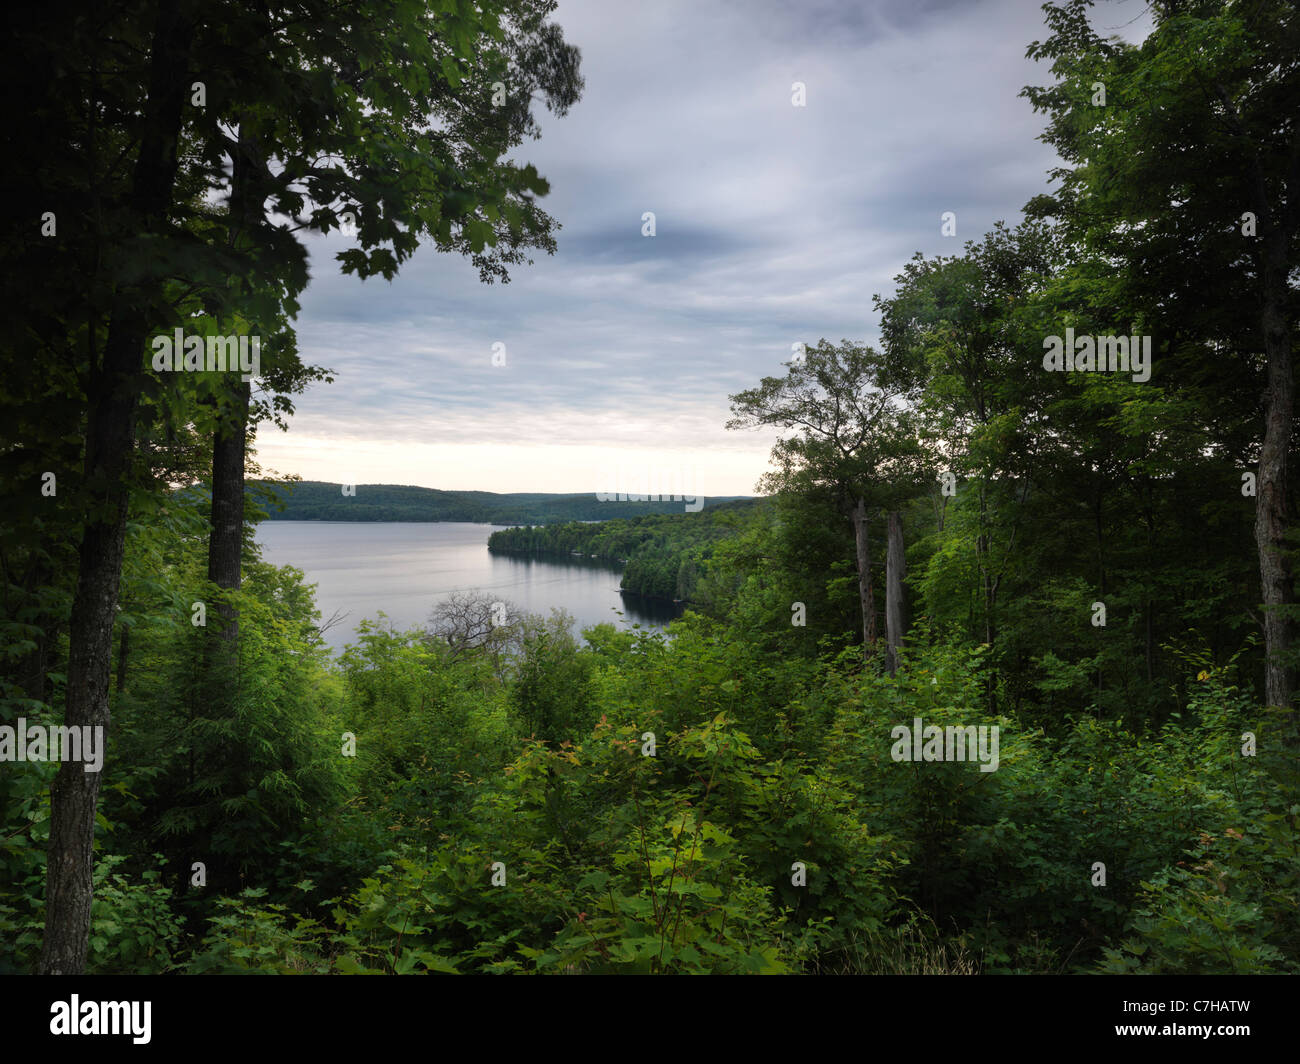 Algonquin Provincial Park view on Smoke Lake summertime nature scenery. Ontario, Canada. - Stock Image